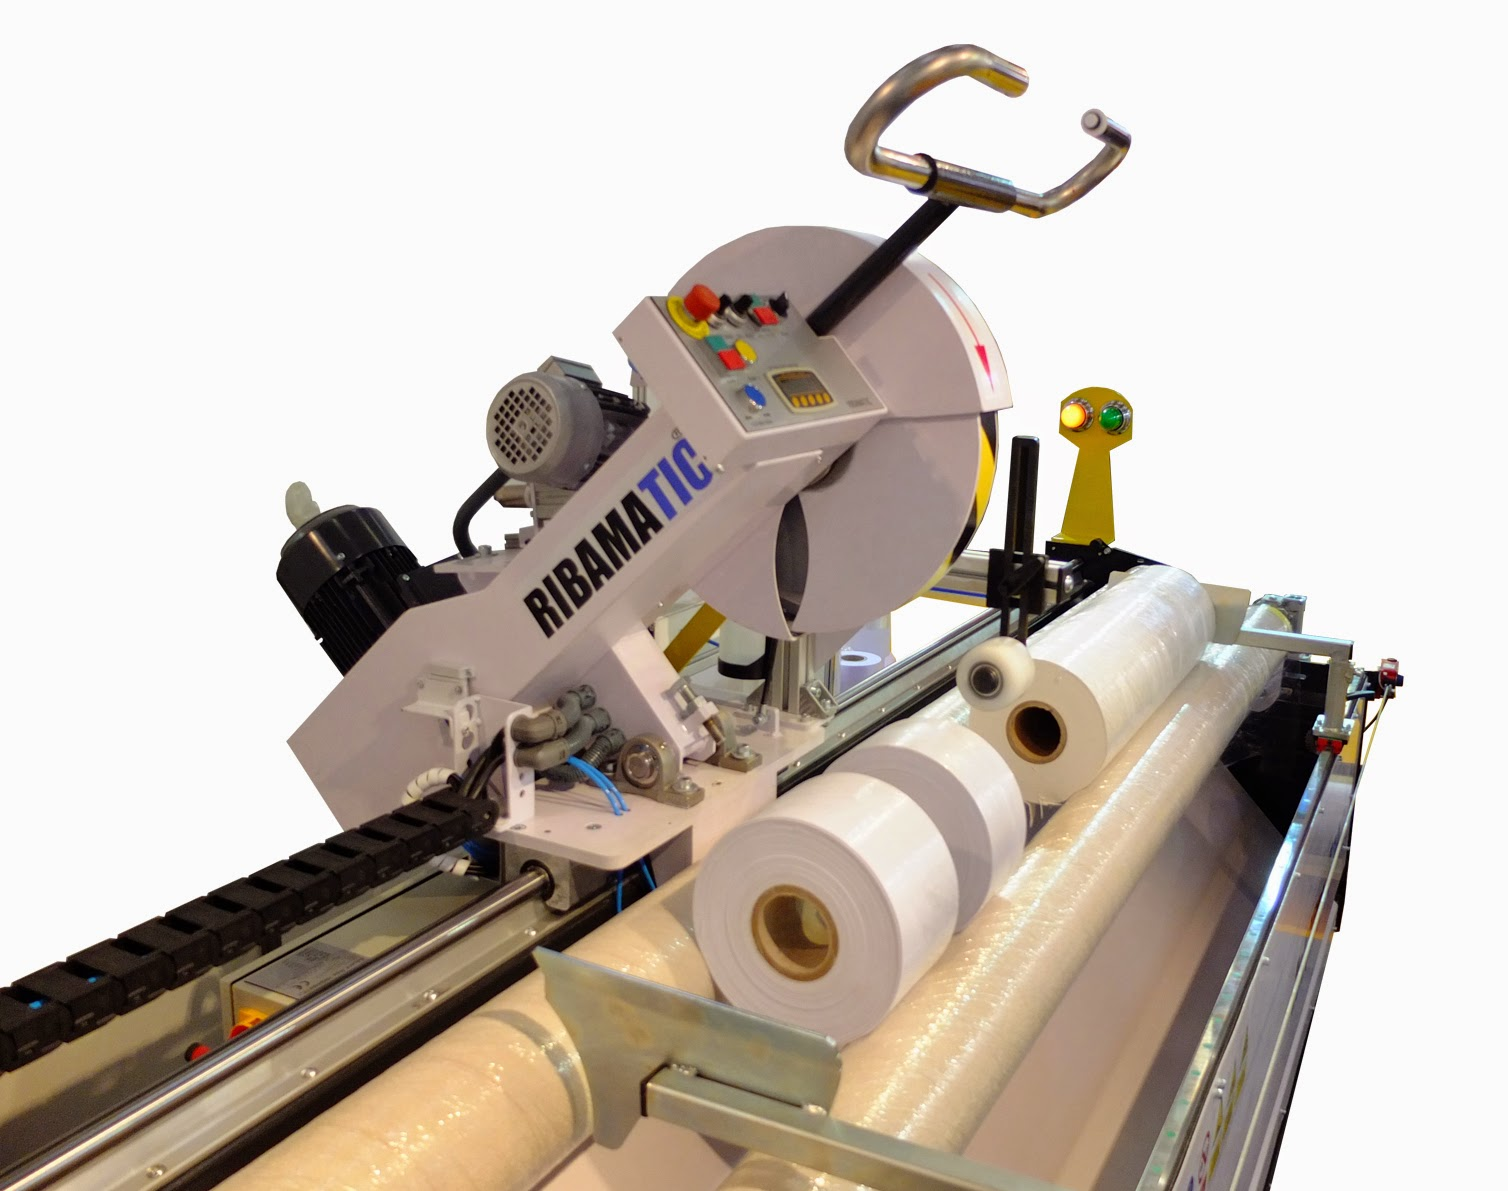 RIBAMATIC Roll Slitter Roll Slitting Machines Foils Banners Polyester Nonwovens Roll